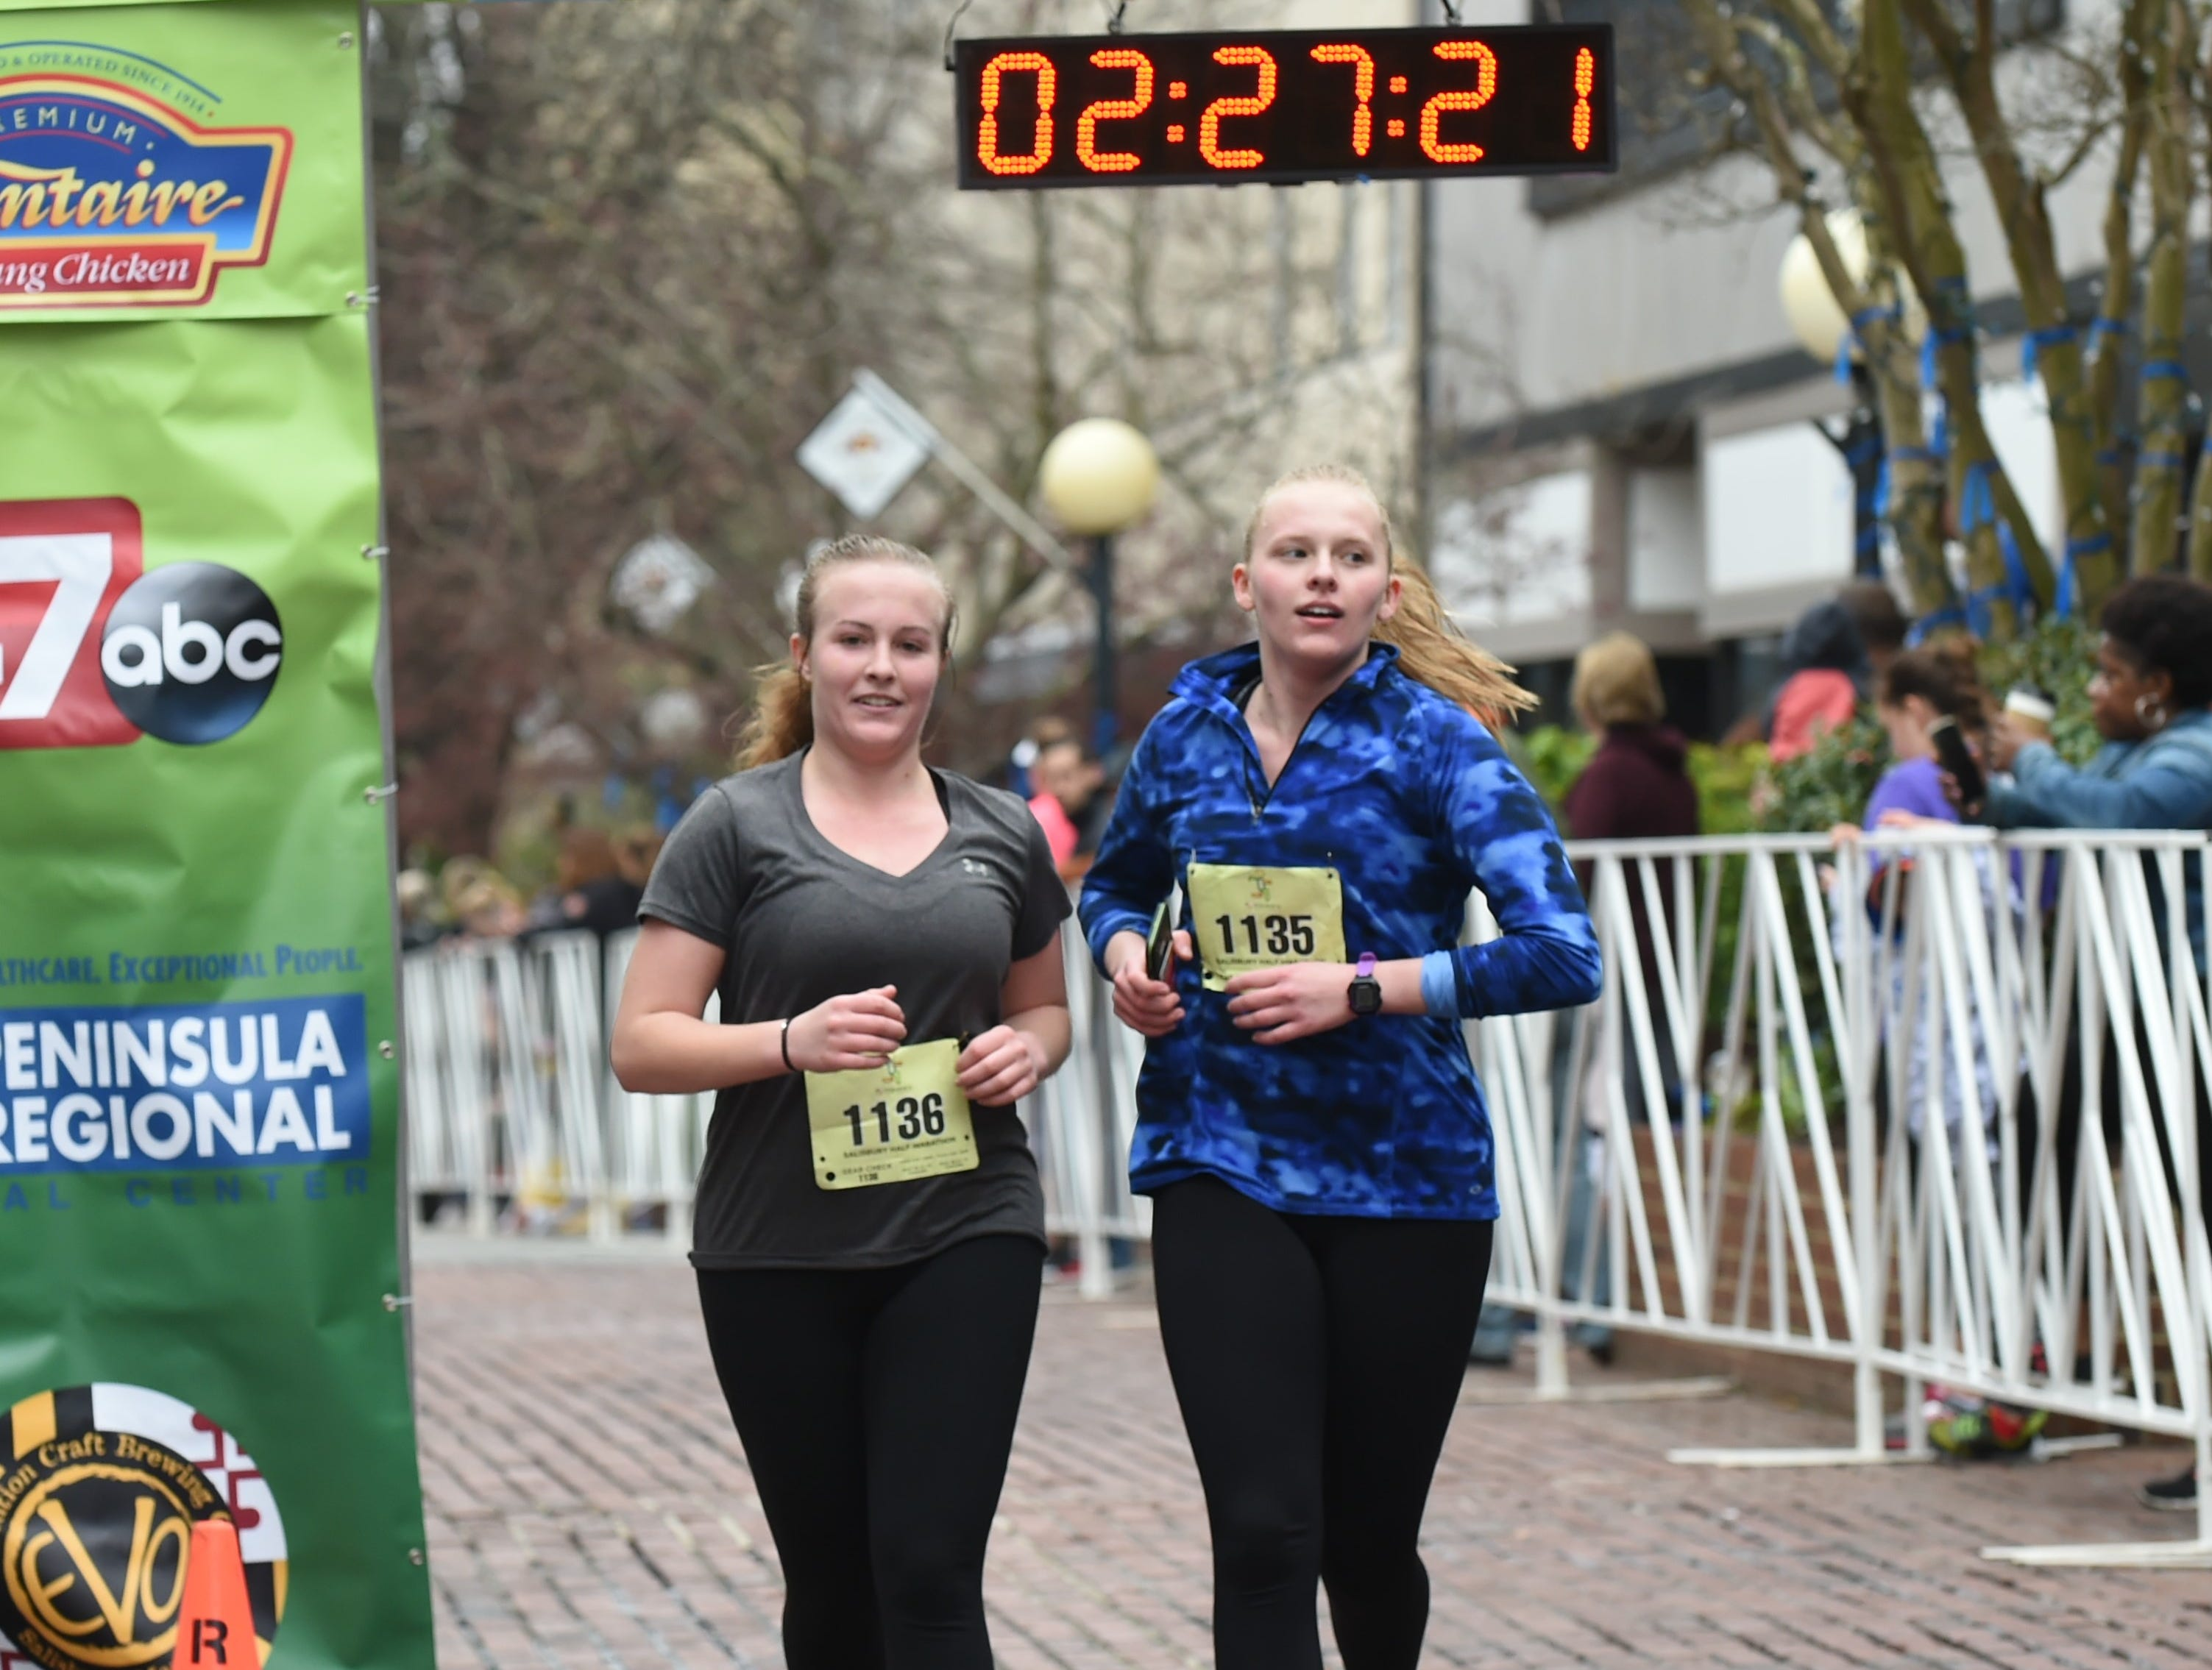 Caroline Copes (left) and Mallory Boyd cross the finish line after running the half marathon at the 2nd Salisbury Marathon/ Half Marathon/ 5k on Saturday, April 6, 2019.